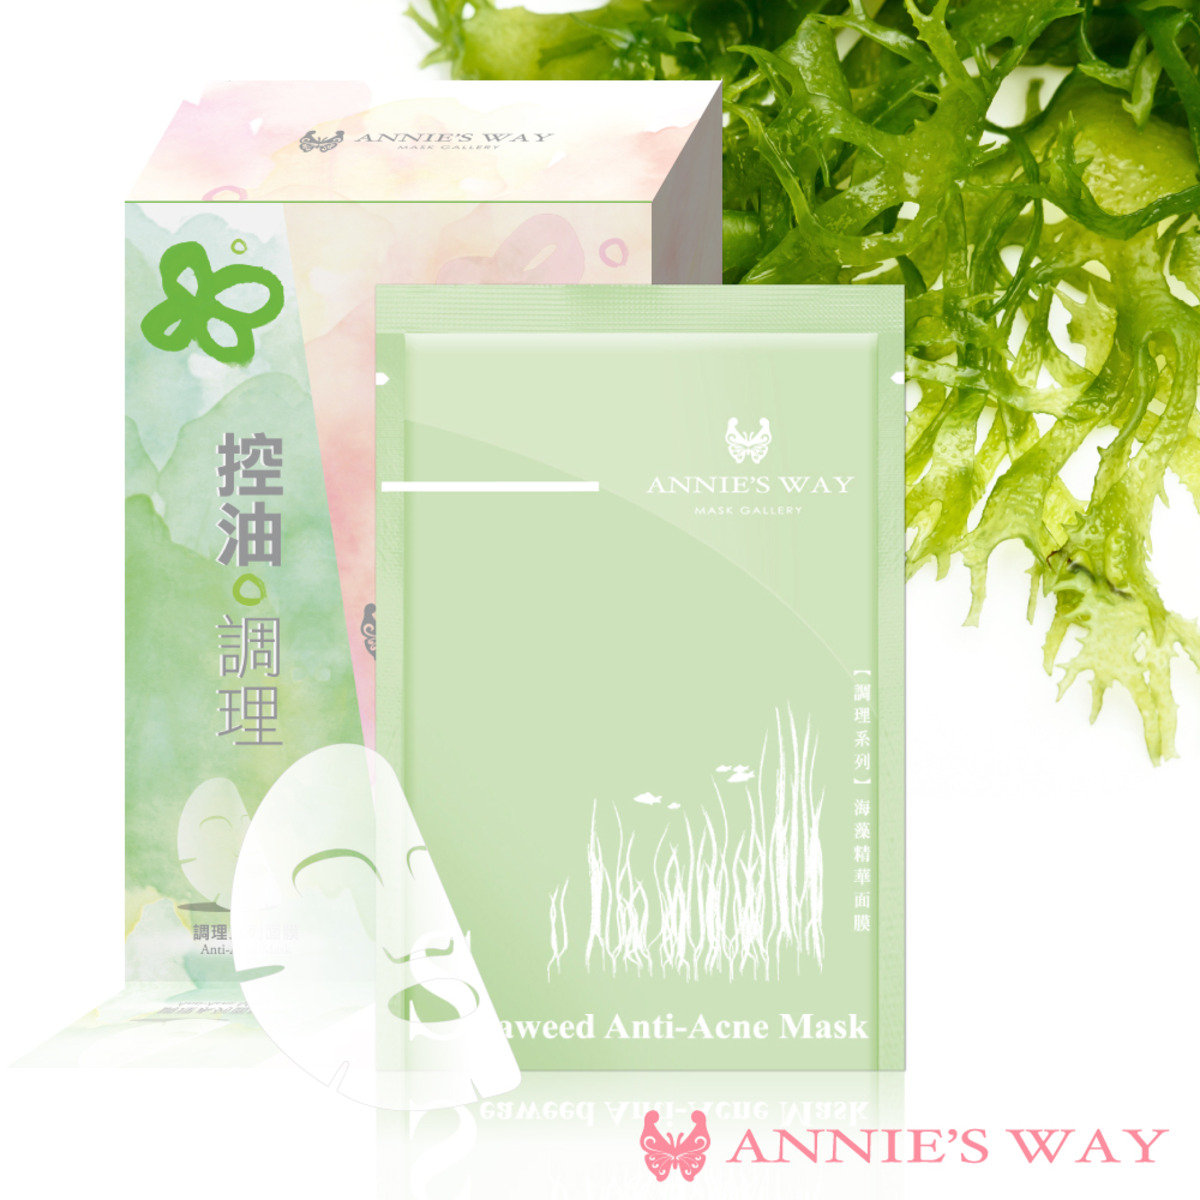 Anti-Acne Mask Set - 10 pcs